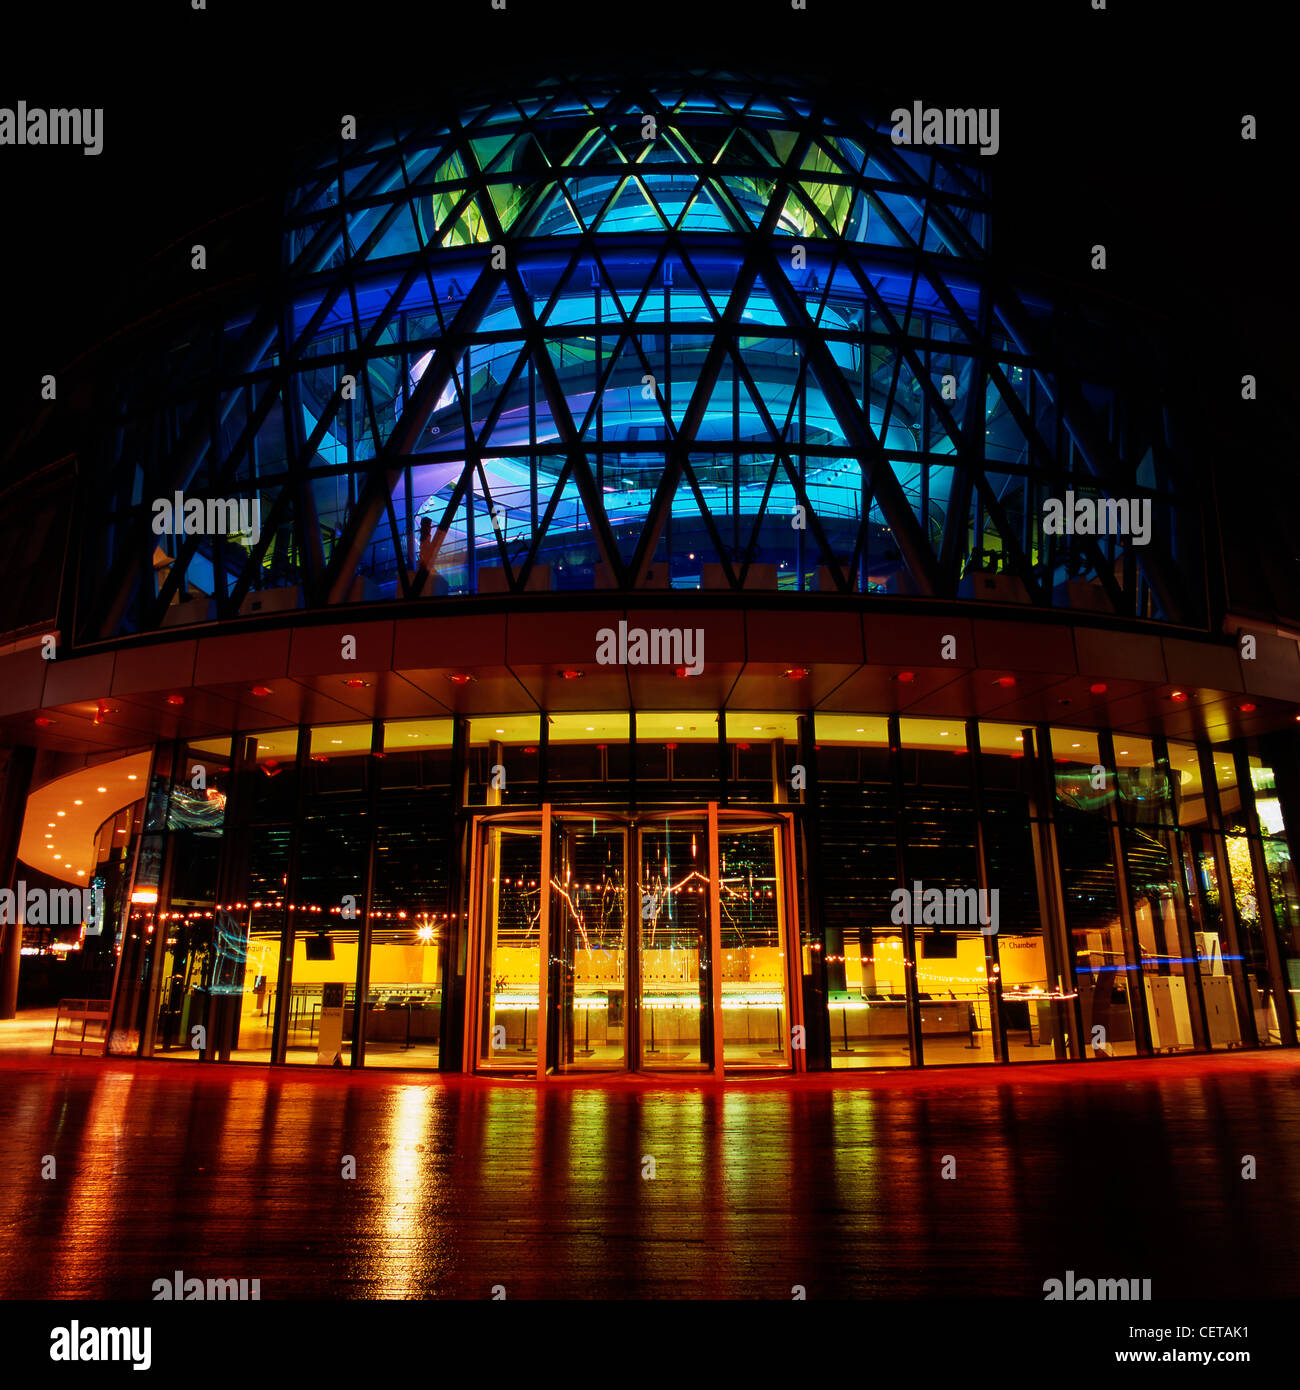 City Hall at night. Headquarters of Greater London Authority, the building was designed by Norman Foster and opened - Stock Image